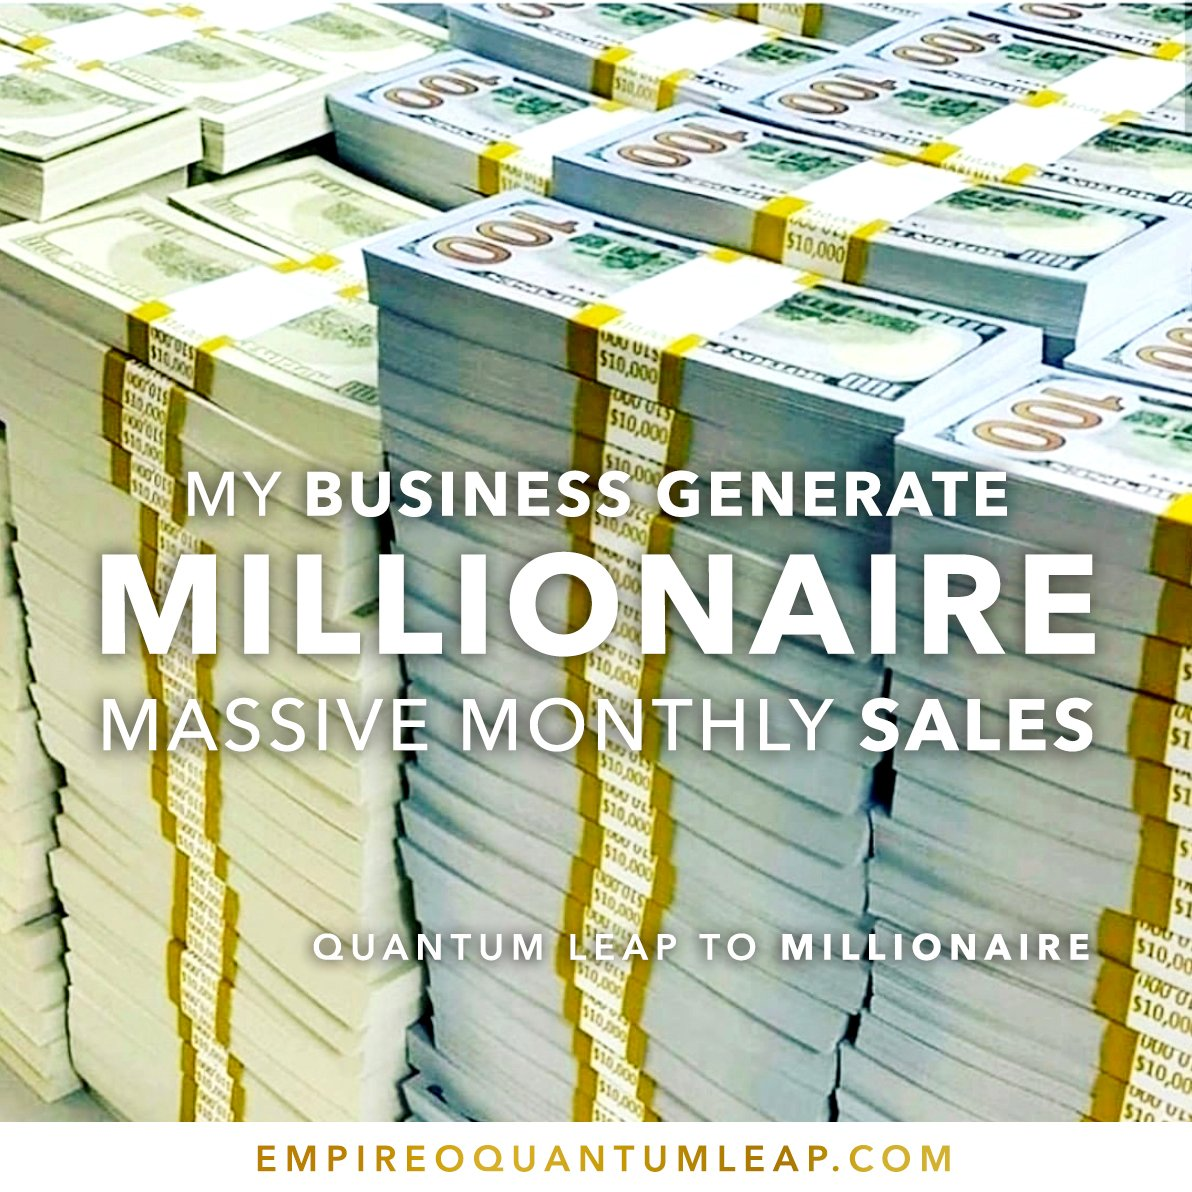 """Your BUSINESS GENERATE MILLIONAIRE massive monthly sales. 👔🥇🏆💵🏦  """"QUANTUM LEAP TO MILLIONAIRE""""💰💎 ▶️ I want to know more about the program https://t.co/zfXarp0sbB https://t.co/i9bzmssjjA"""